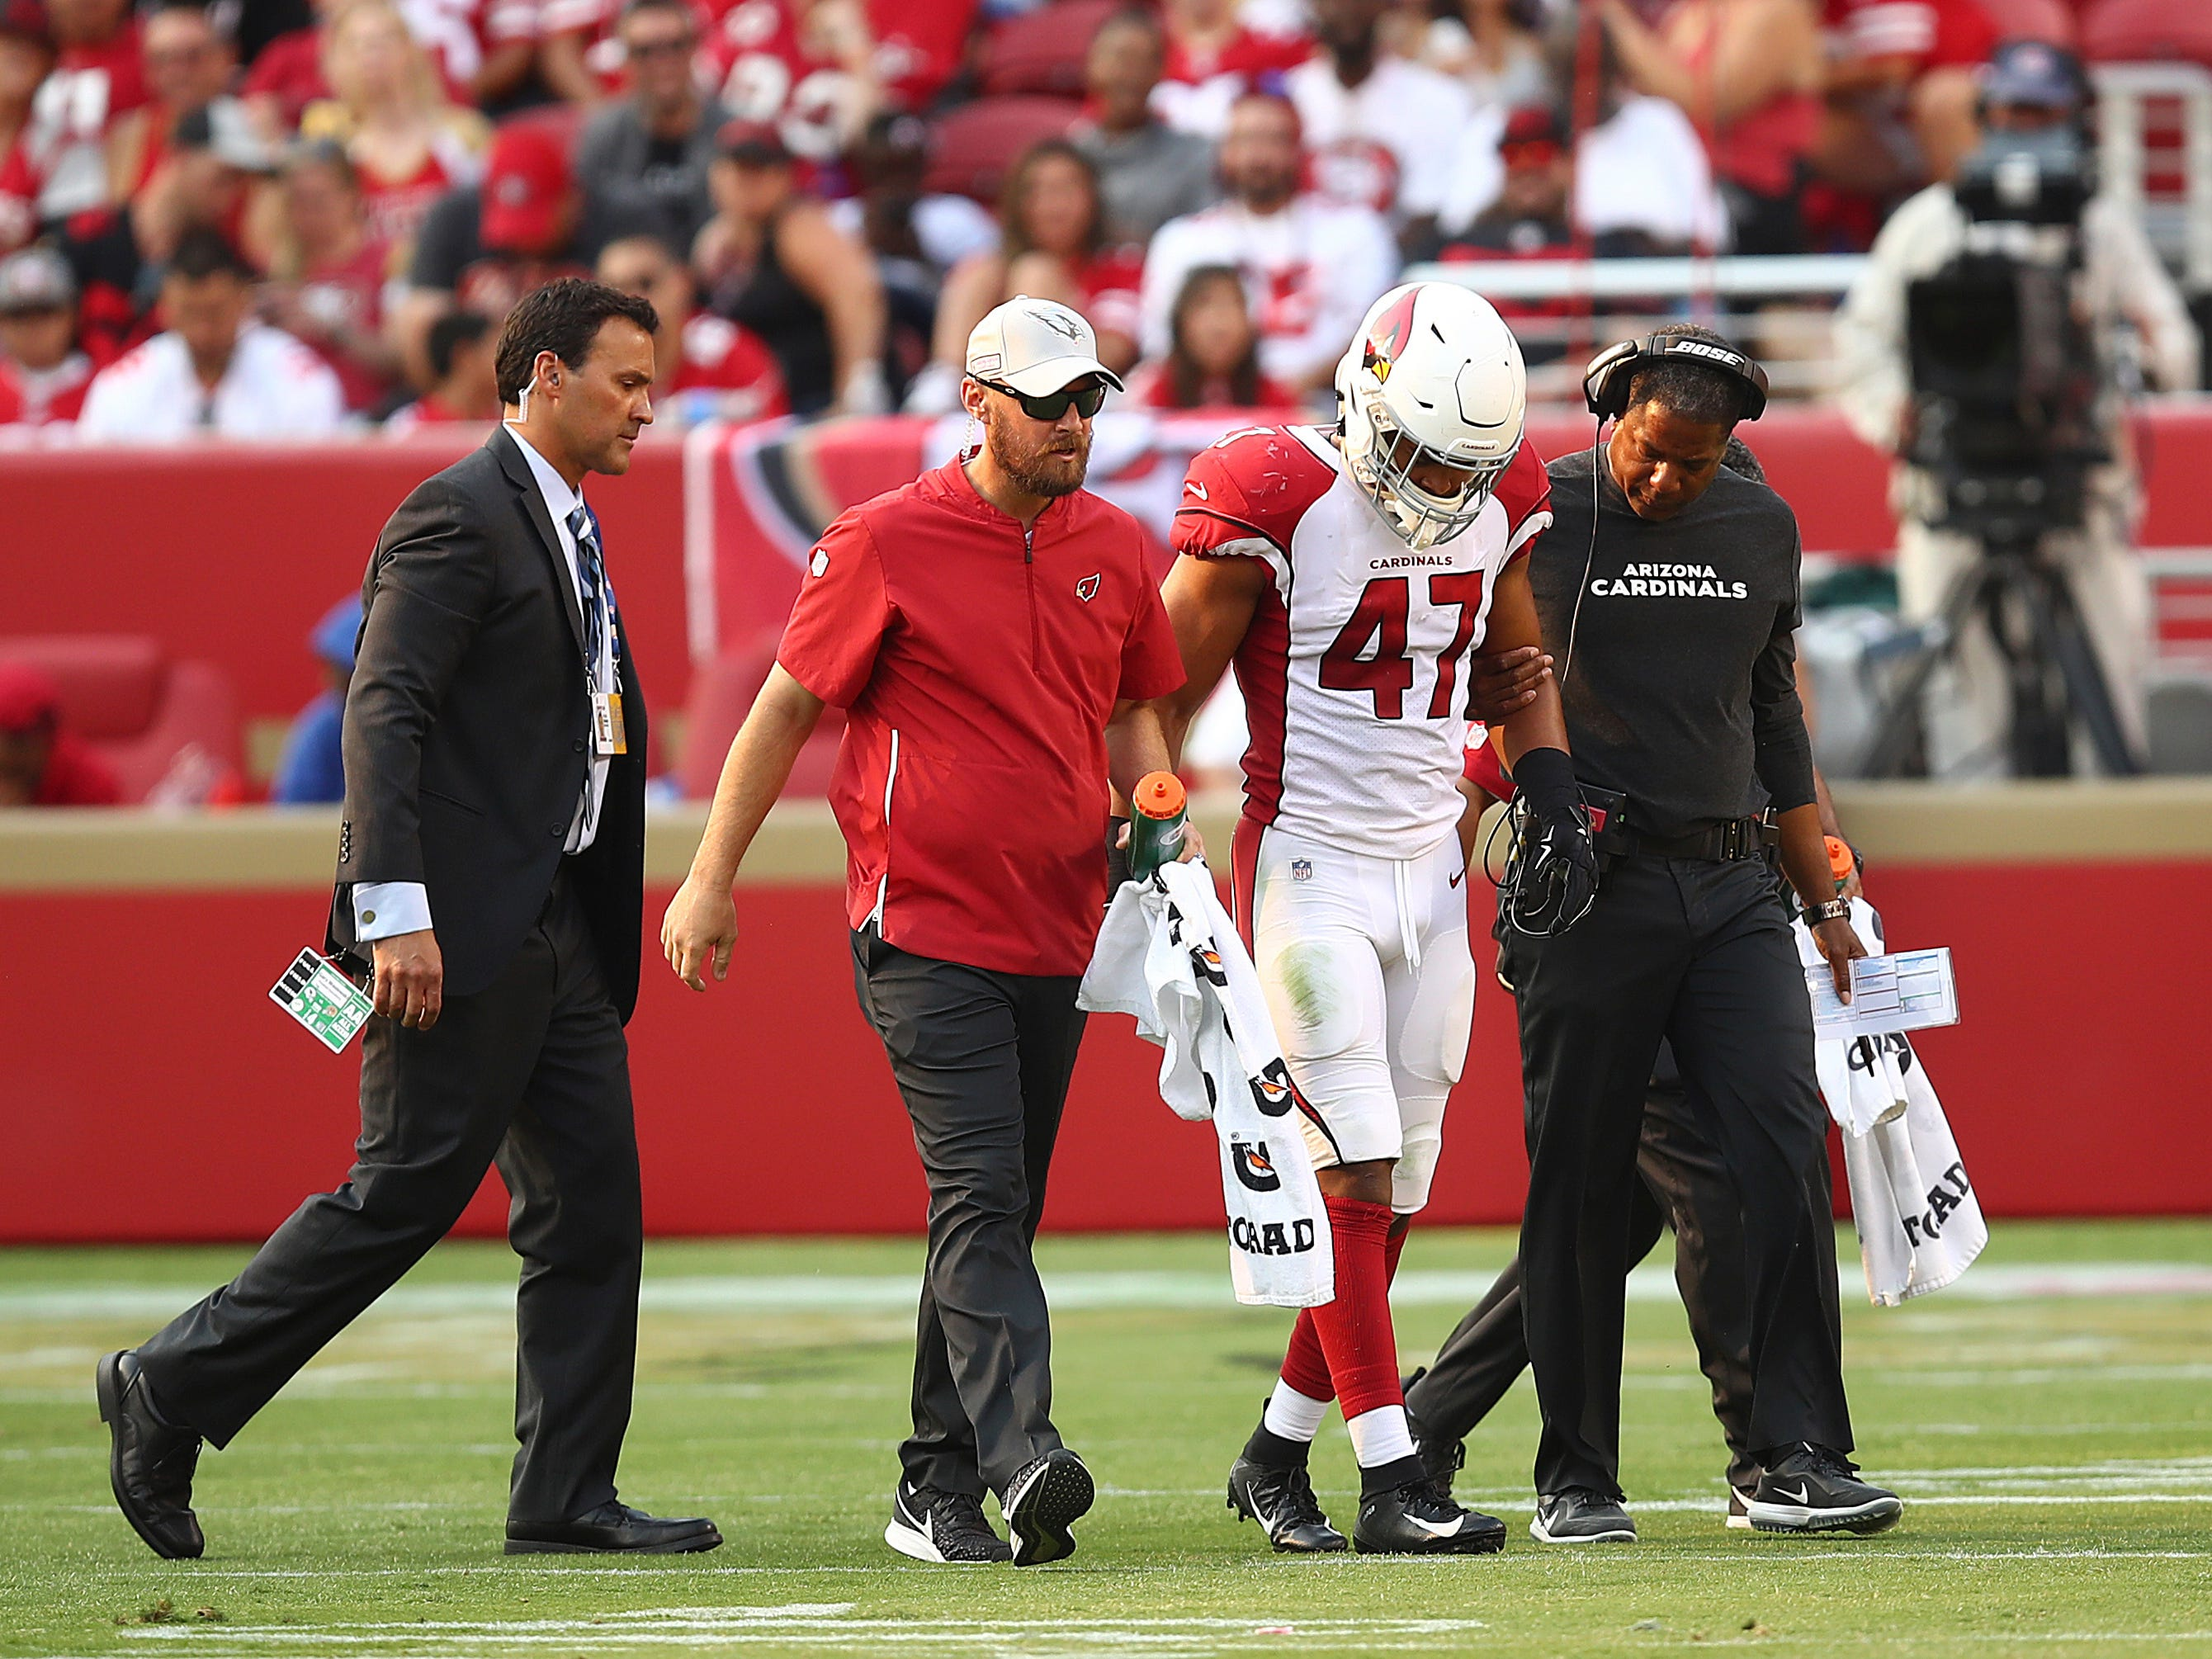 Arizona Cardinals linebacker Ezekiel Turner (47) is helped off the field by head coach Steve Wilks, right, and trainers during the second half of an NFL football game against the San Francisco 49ers in Santa Clara, Calif., Sunday, Oct. 7, 2018.